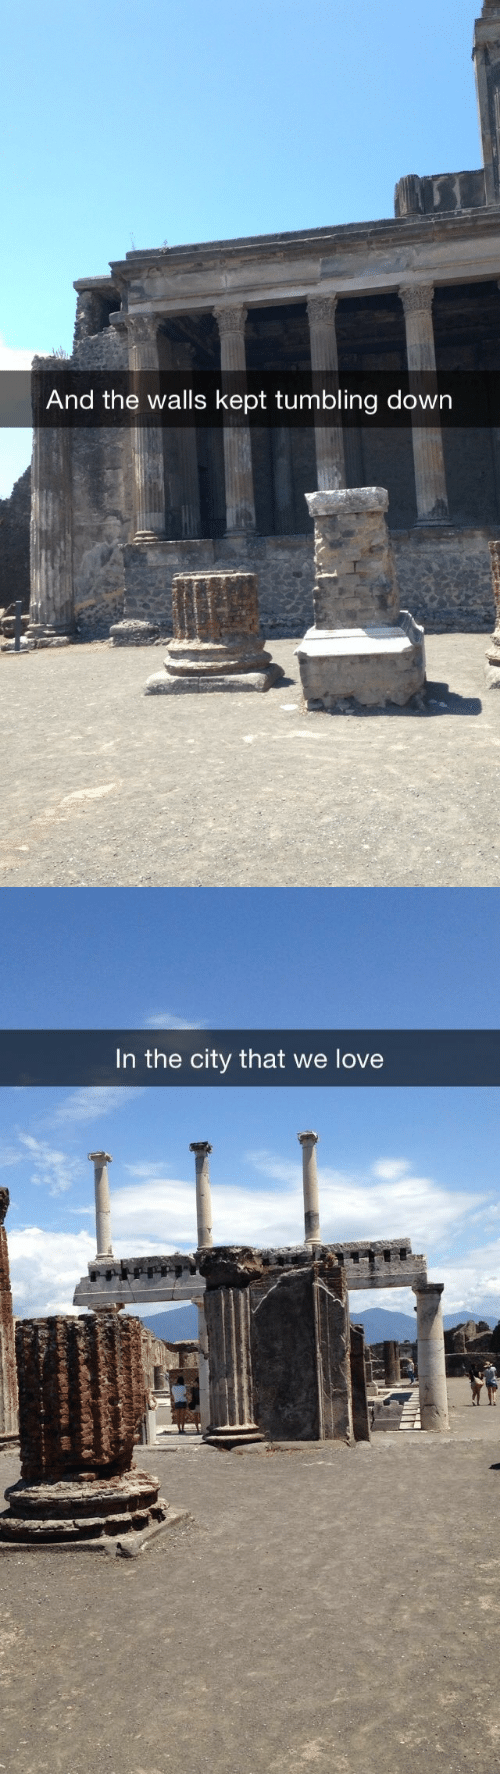 Love, Down, and City: And the walls kept tumbling down   In the city that we love